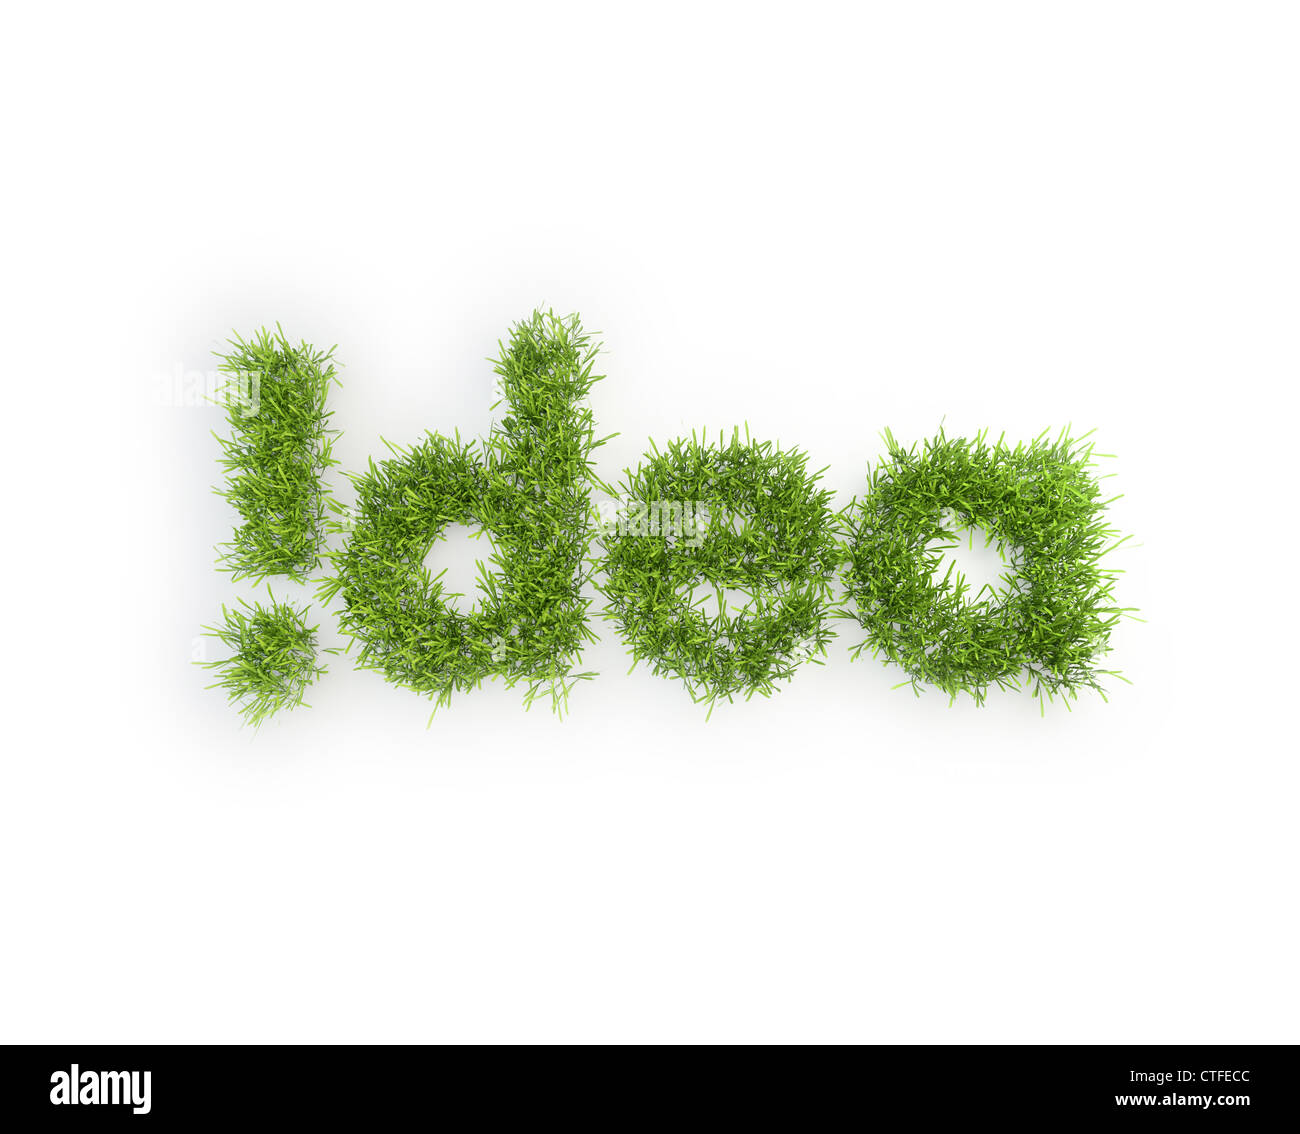 Idea grass patch - creativity concept Stock Photo